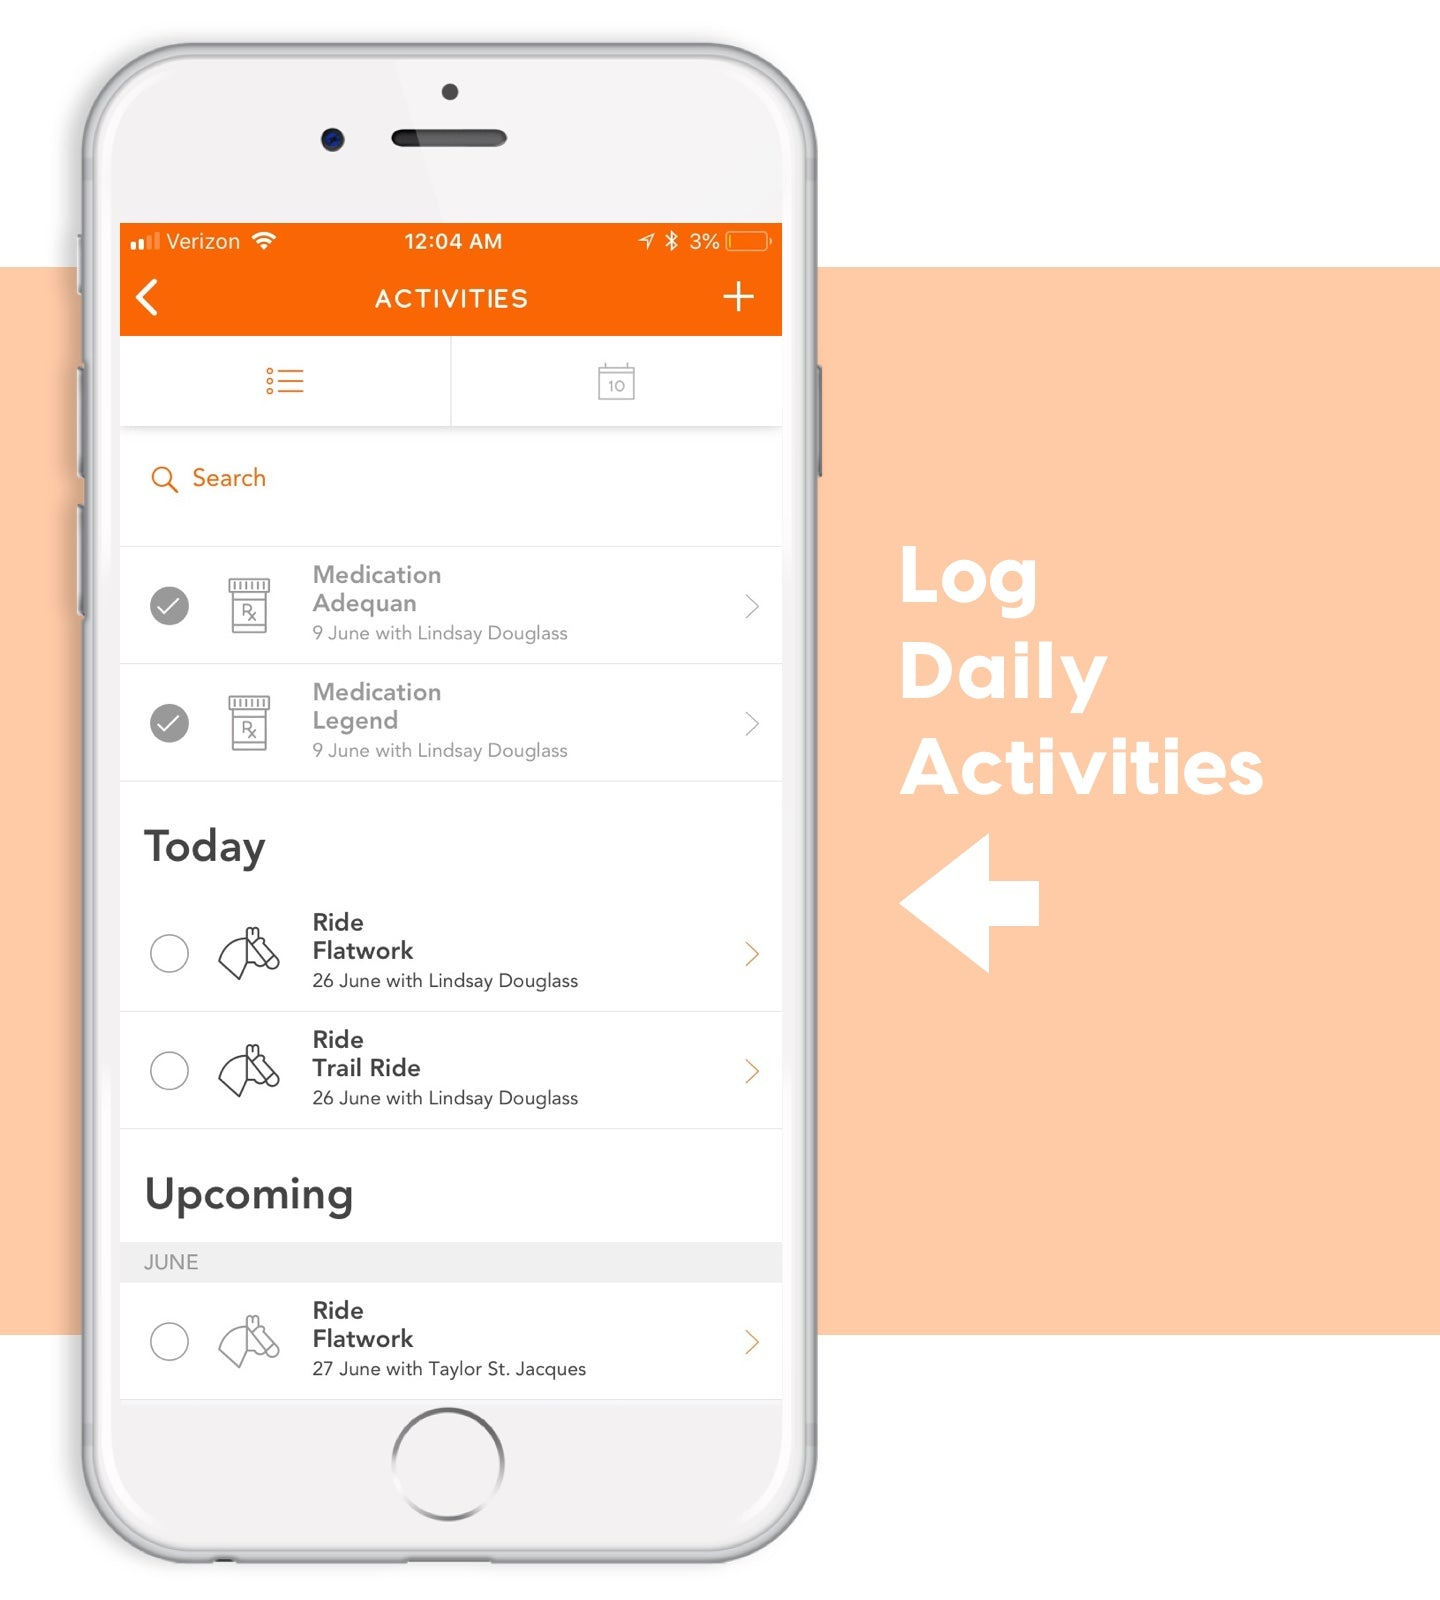 log daily activities on ponyapp